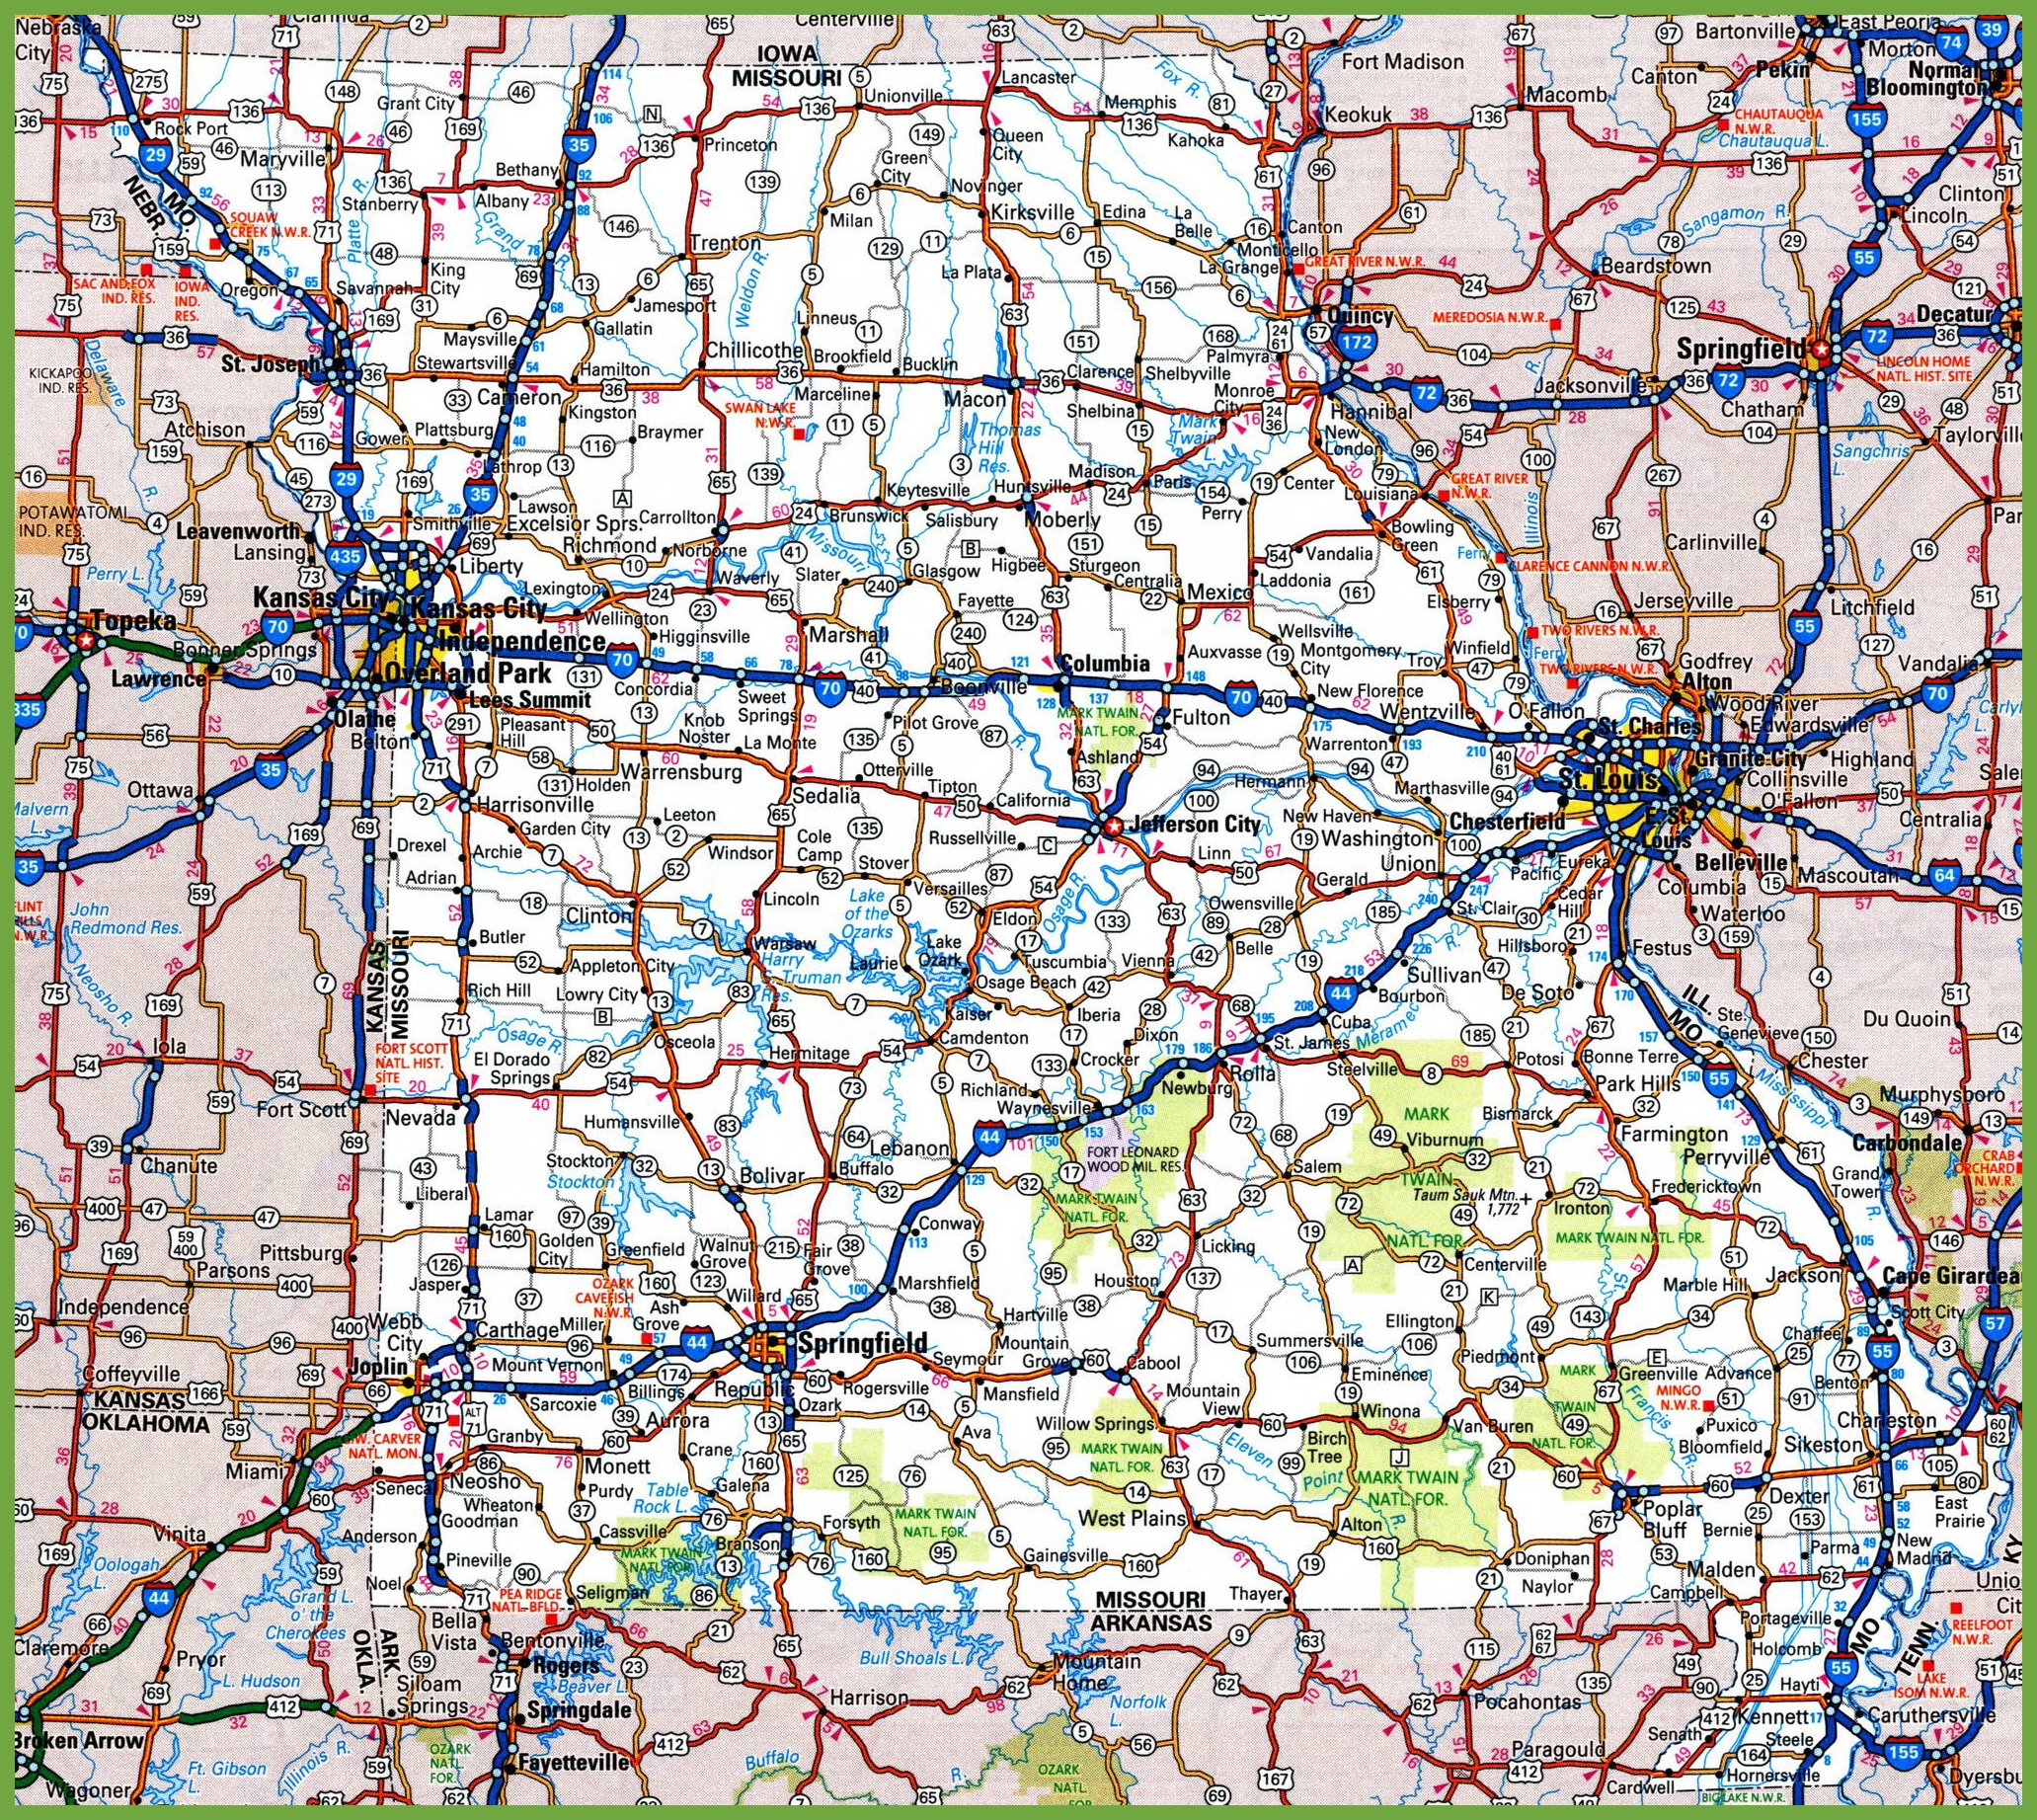 Missouri Highway Map Missouri road map